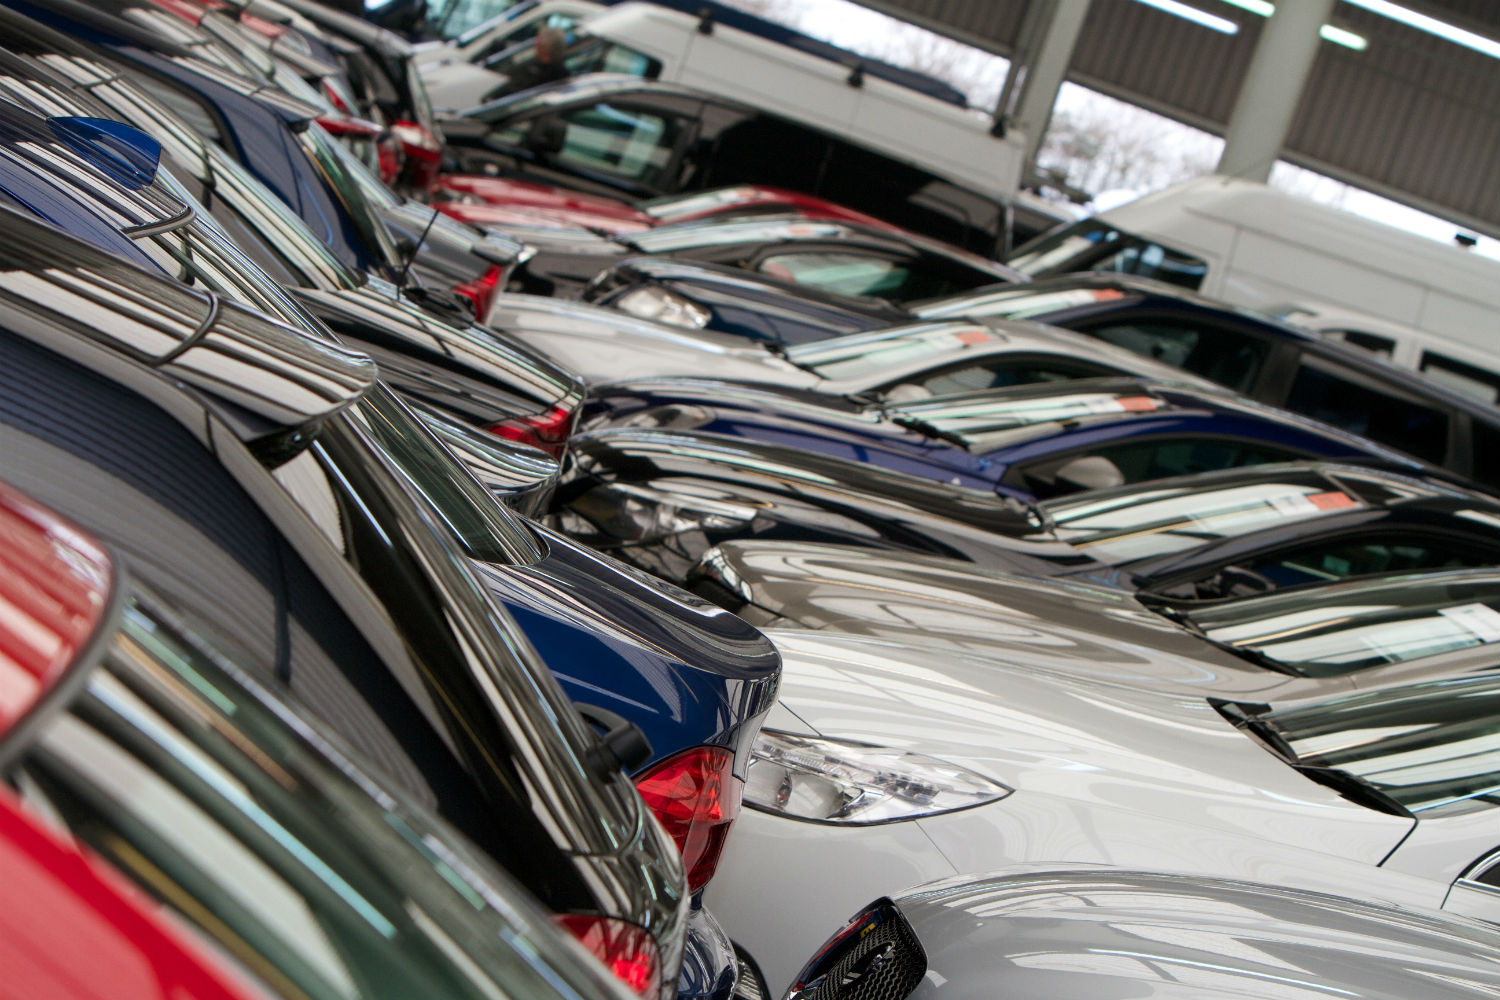 Cars and vans prepared for auction